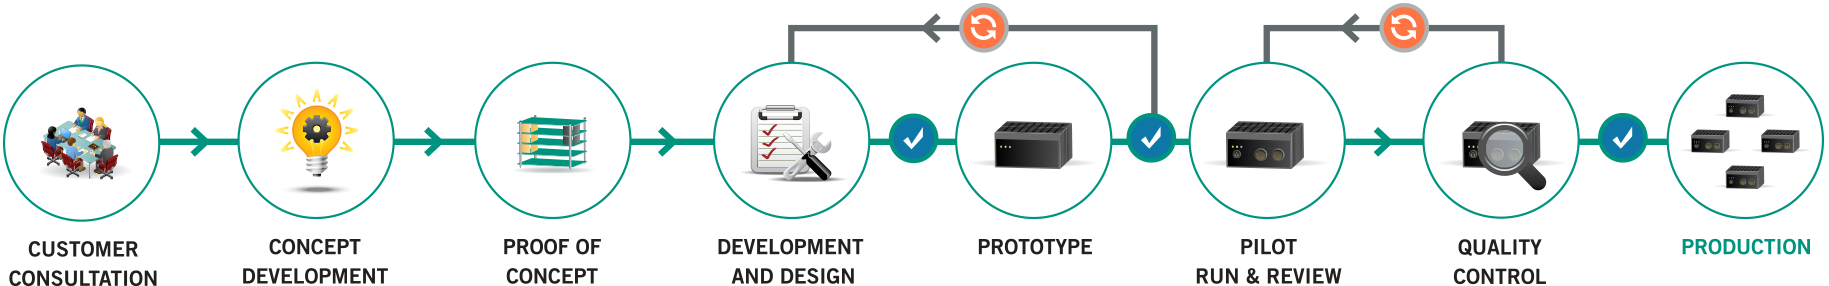 ADL Embedded Solutions Custom System Development Process